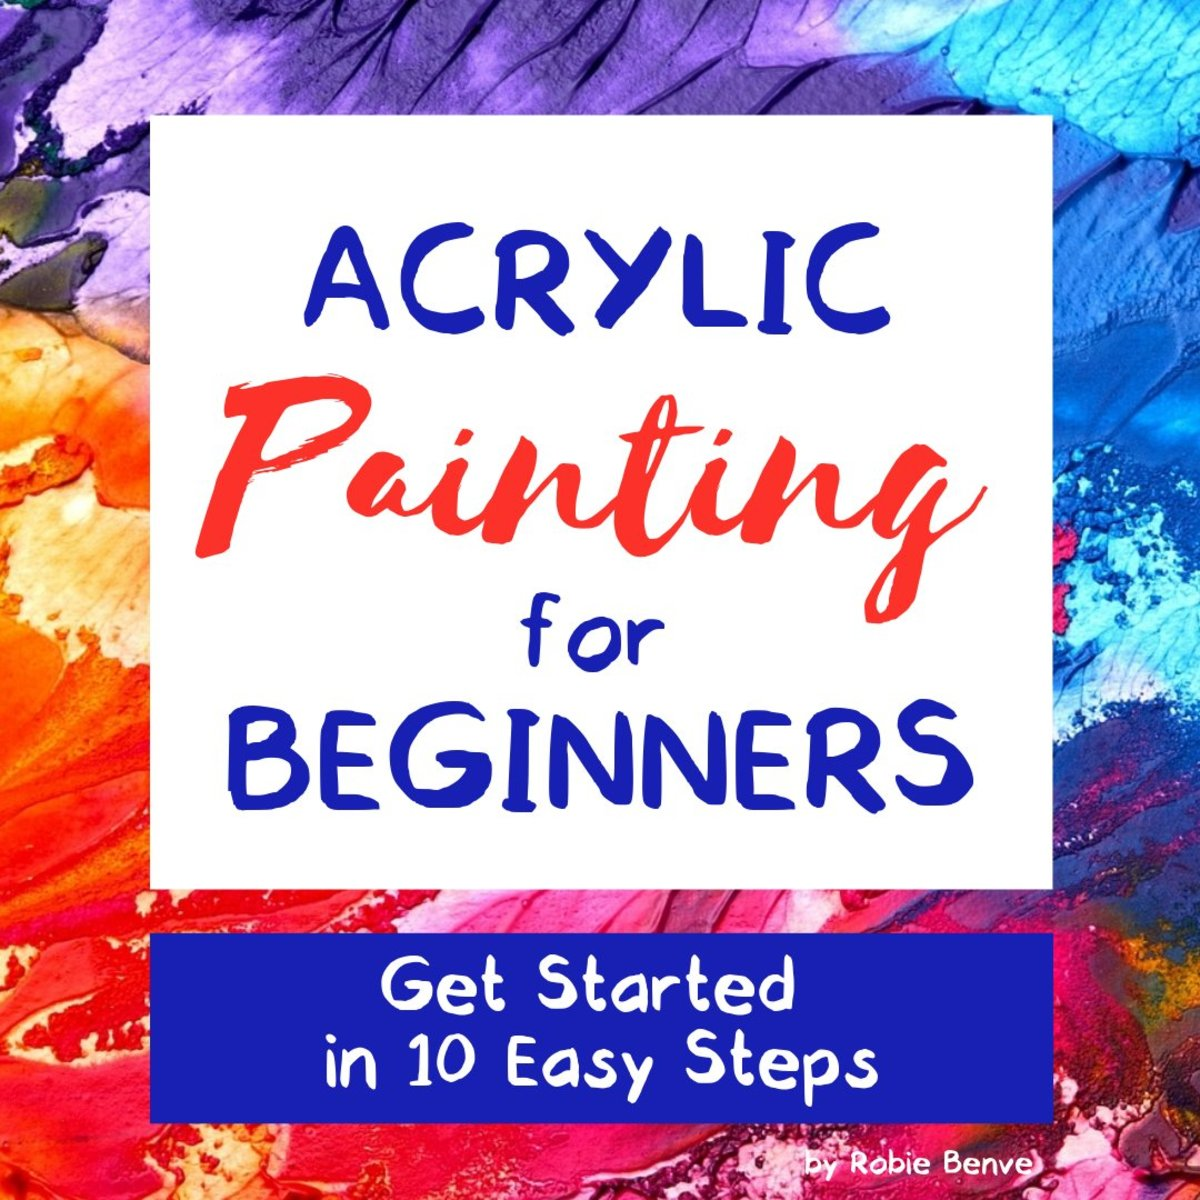 Acrylic painting for beginners: all you need to get started. Great info about art supplies and materials needed to start painting with acrylics for beginners.  Tips on the best paint, brushes, canvas, and easel to buy.